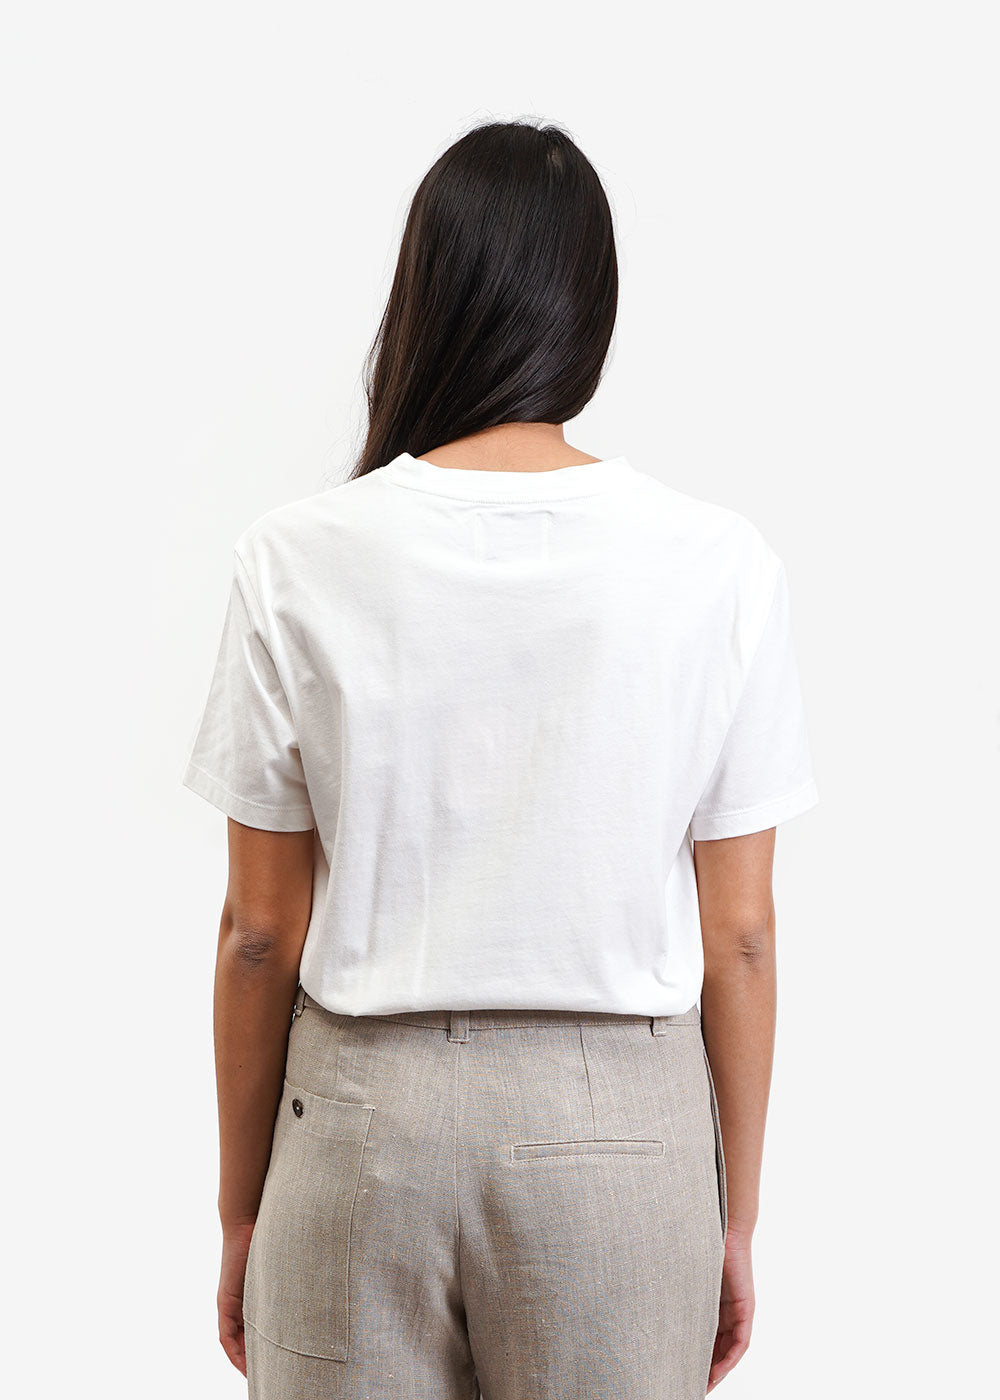 Paloma Wool Recuerdo T-Shirt — Shop sustainable fashion and slow fashion at New Classics Studios